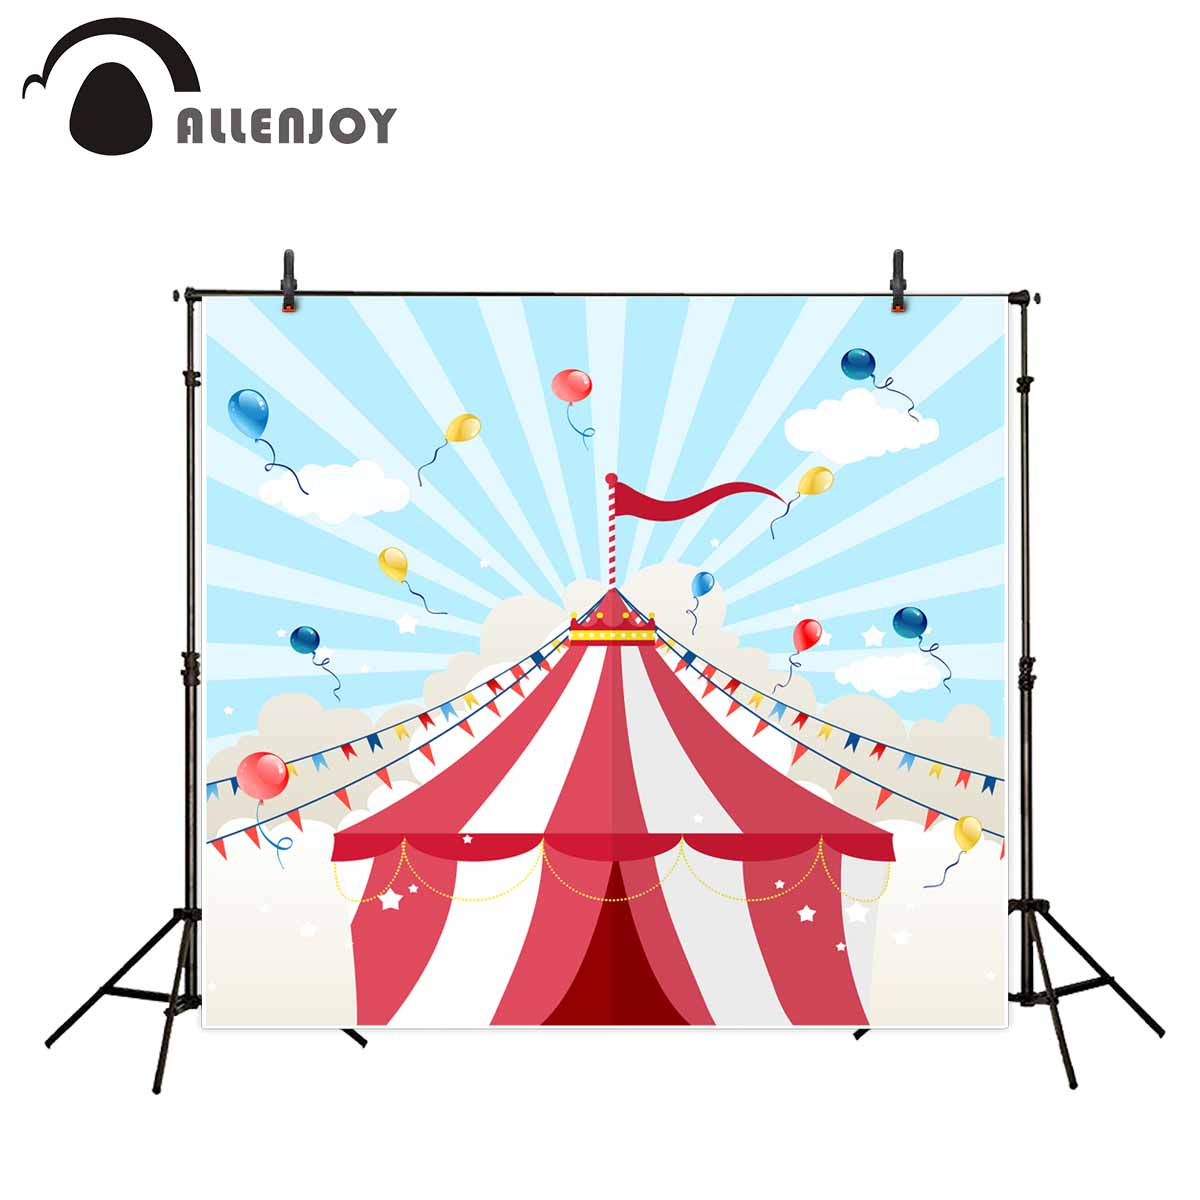 Allenjoy photography backdrops Circus backdrop Balloons for Children birthday Party For a photo shoot photography background kate photo background newborn birthday photography background lollipop and cake table backdrop for children photo shoot